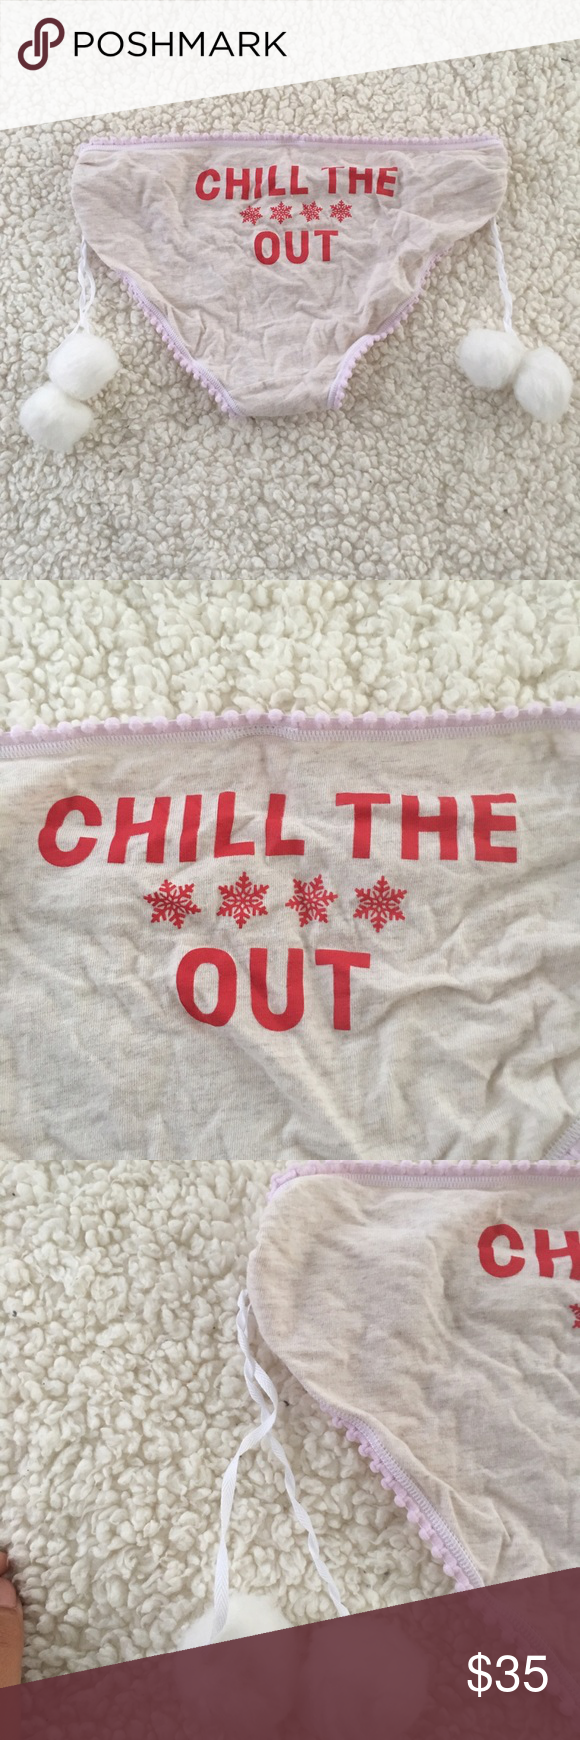 CHILL THE **** OUT Panties Used Once • Christmas Undies Victoria's Secret Intimates & Sleepwear Panties